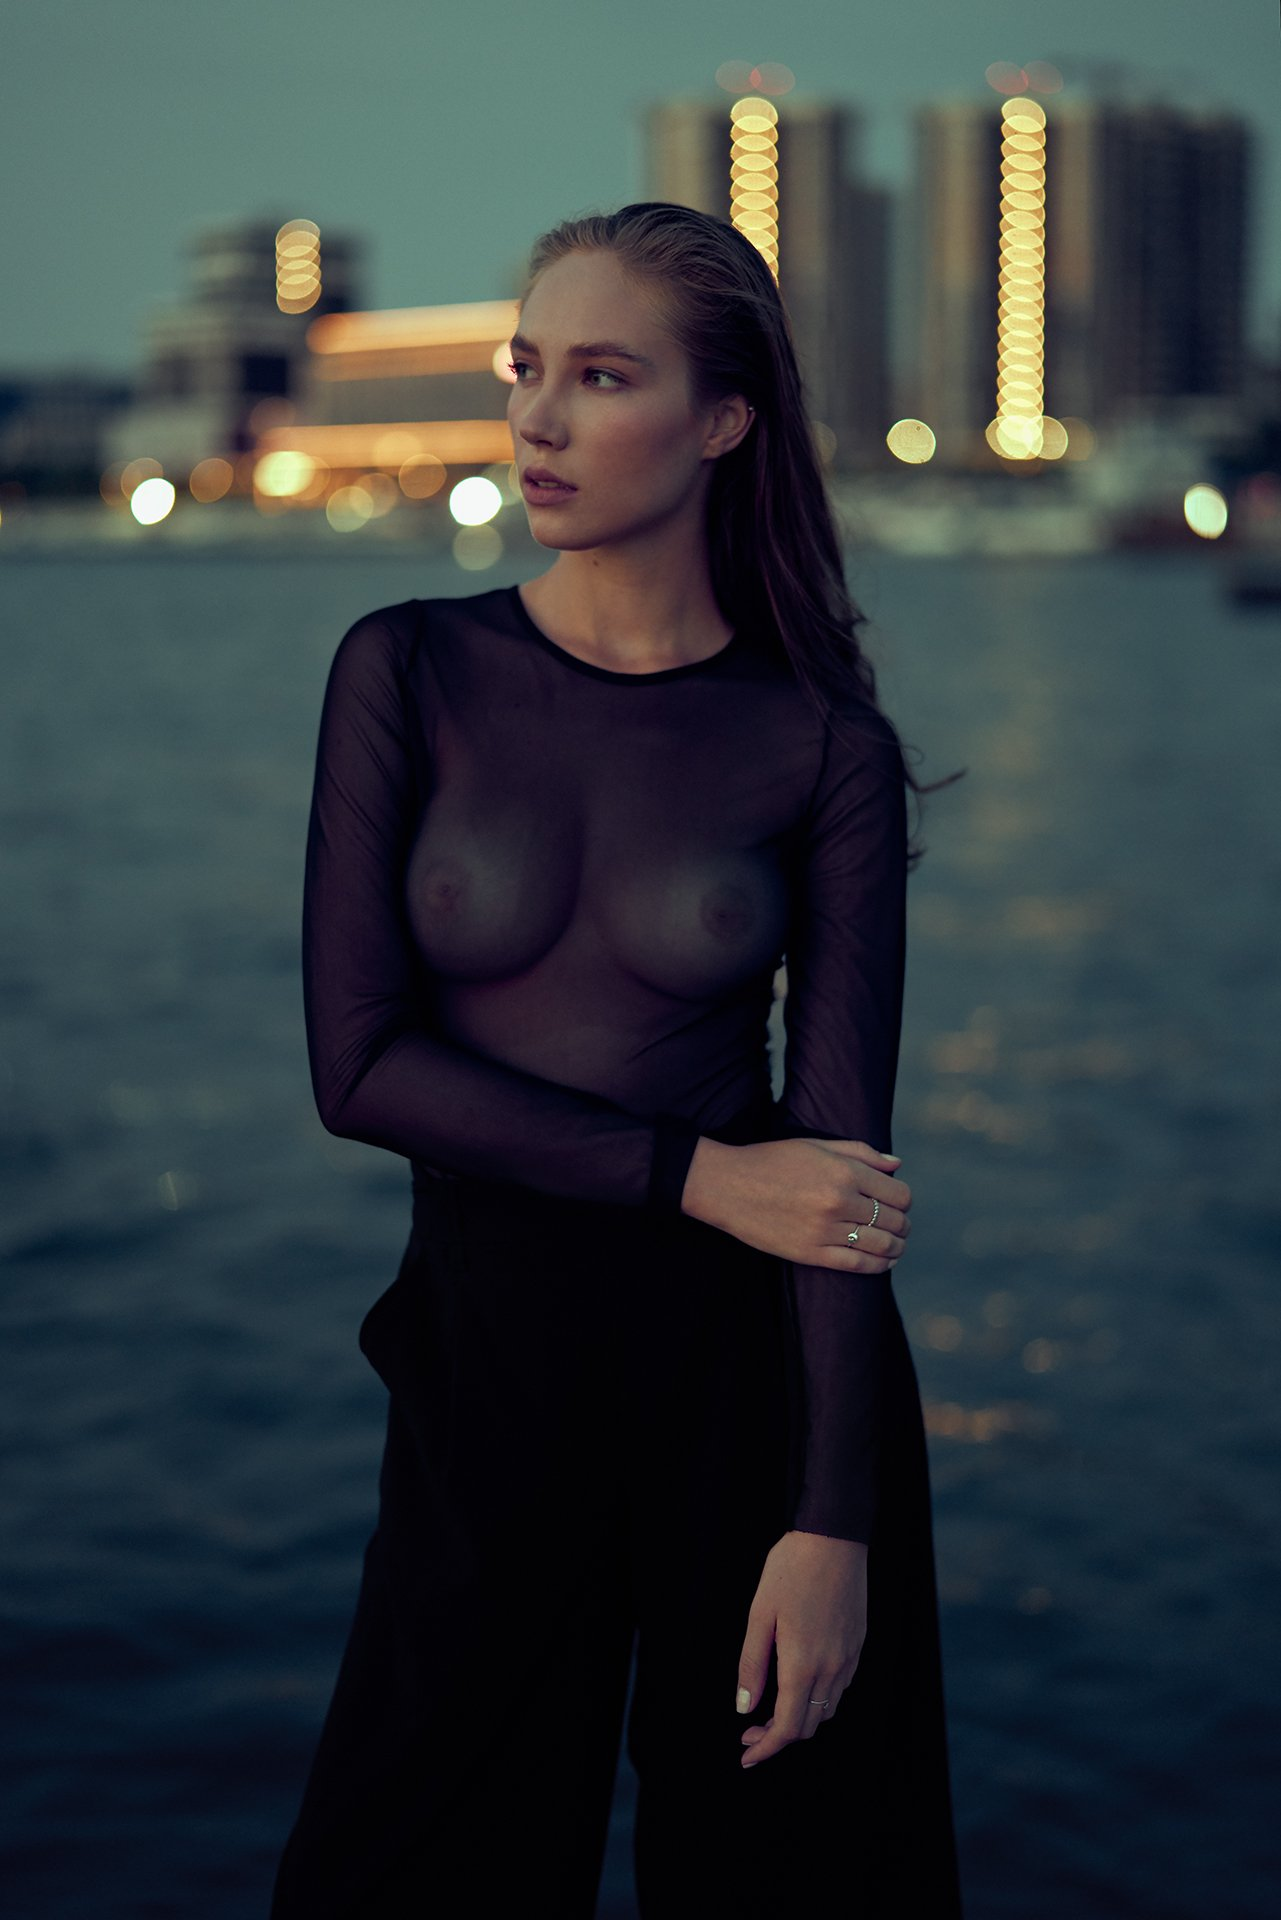 girl, sea, city, morning, dawn, dark, model, nice, beauty, beautiful, blue, novorossiysk, night, water, Роман Филиппов